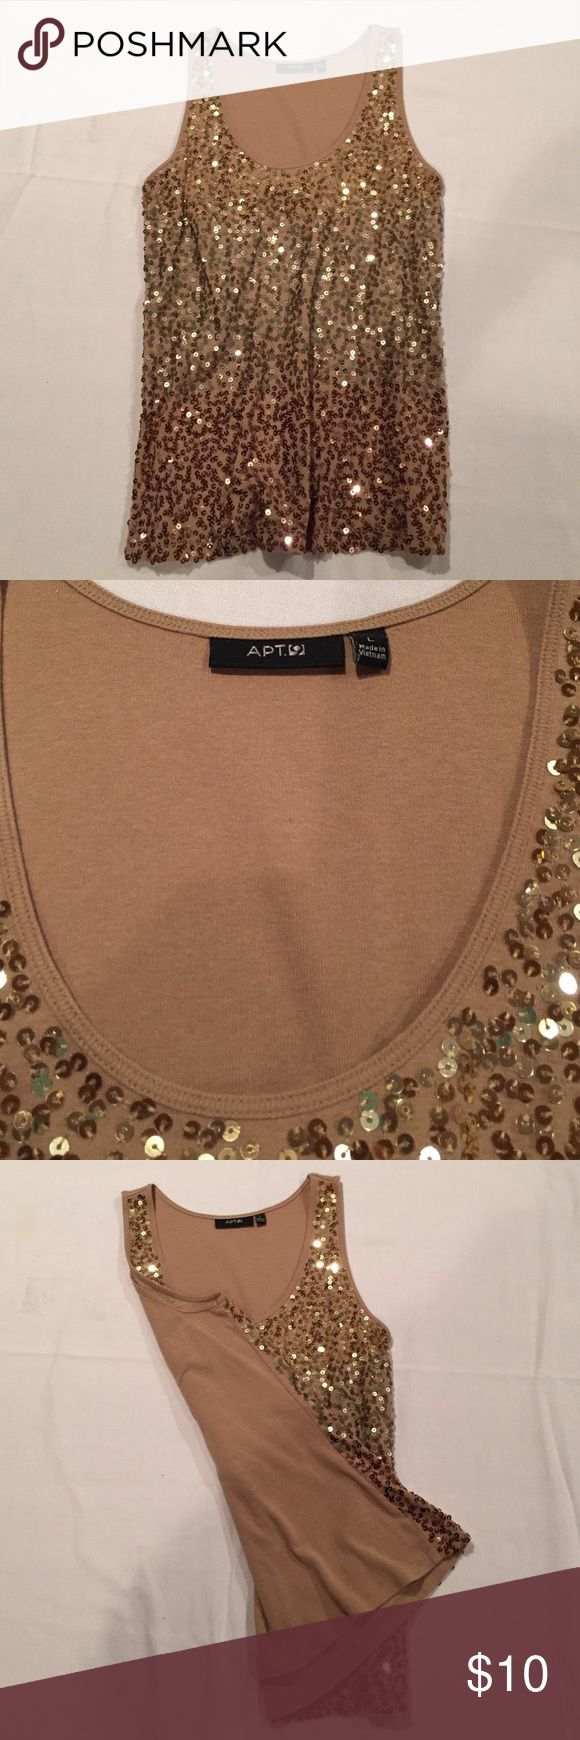 Gold Sequin Tank Top This gold sequined tank top is so comfortable with its cotton back. It is perfect with jeans or with a denim jacket. You will love it! The top is long enough to cover your belly and stretchy enough to fall nicely. Apt. 9 Tops Tank Tops